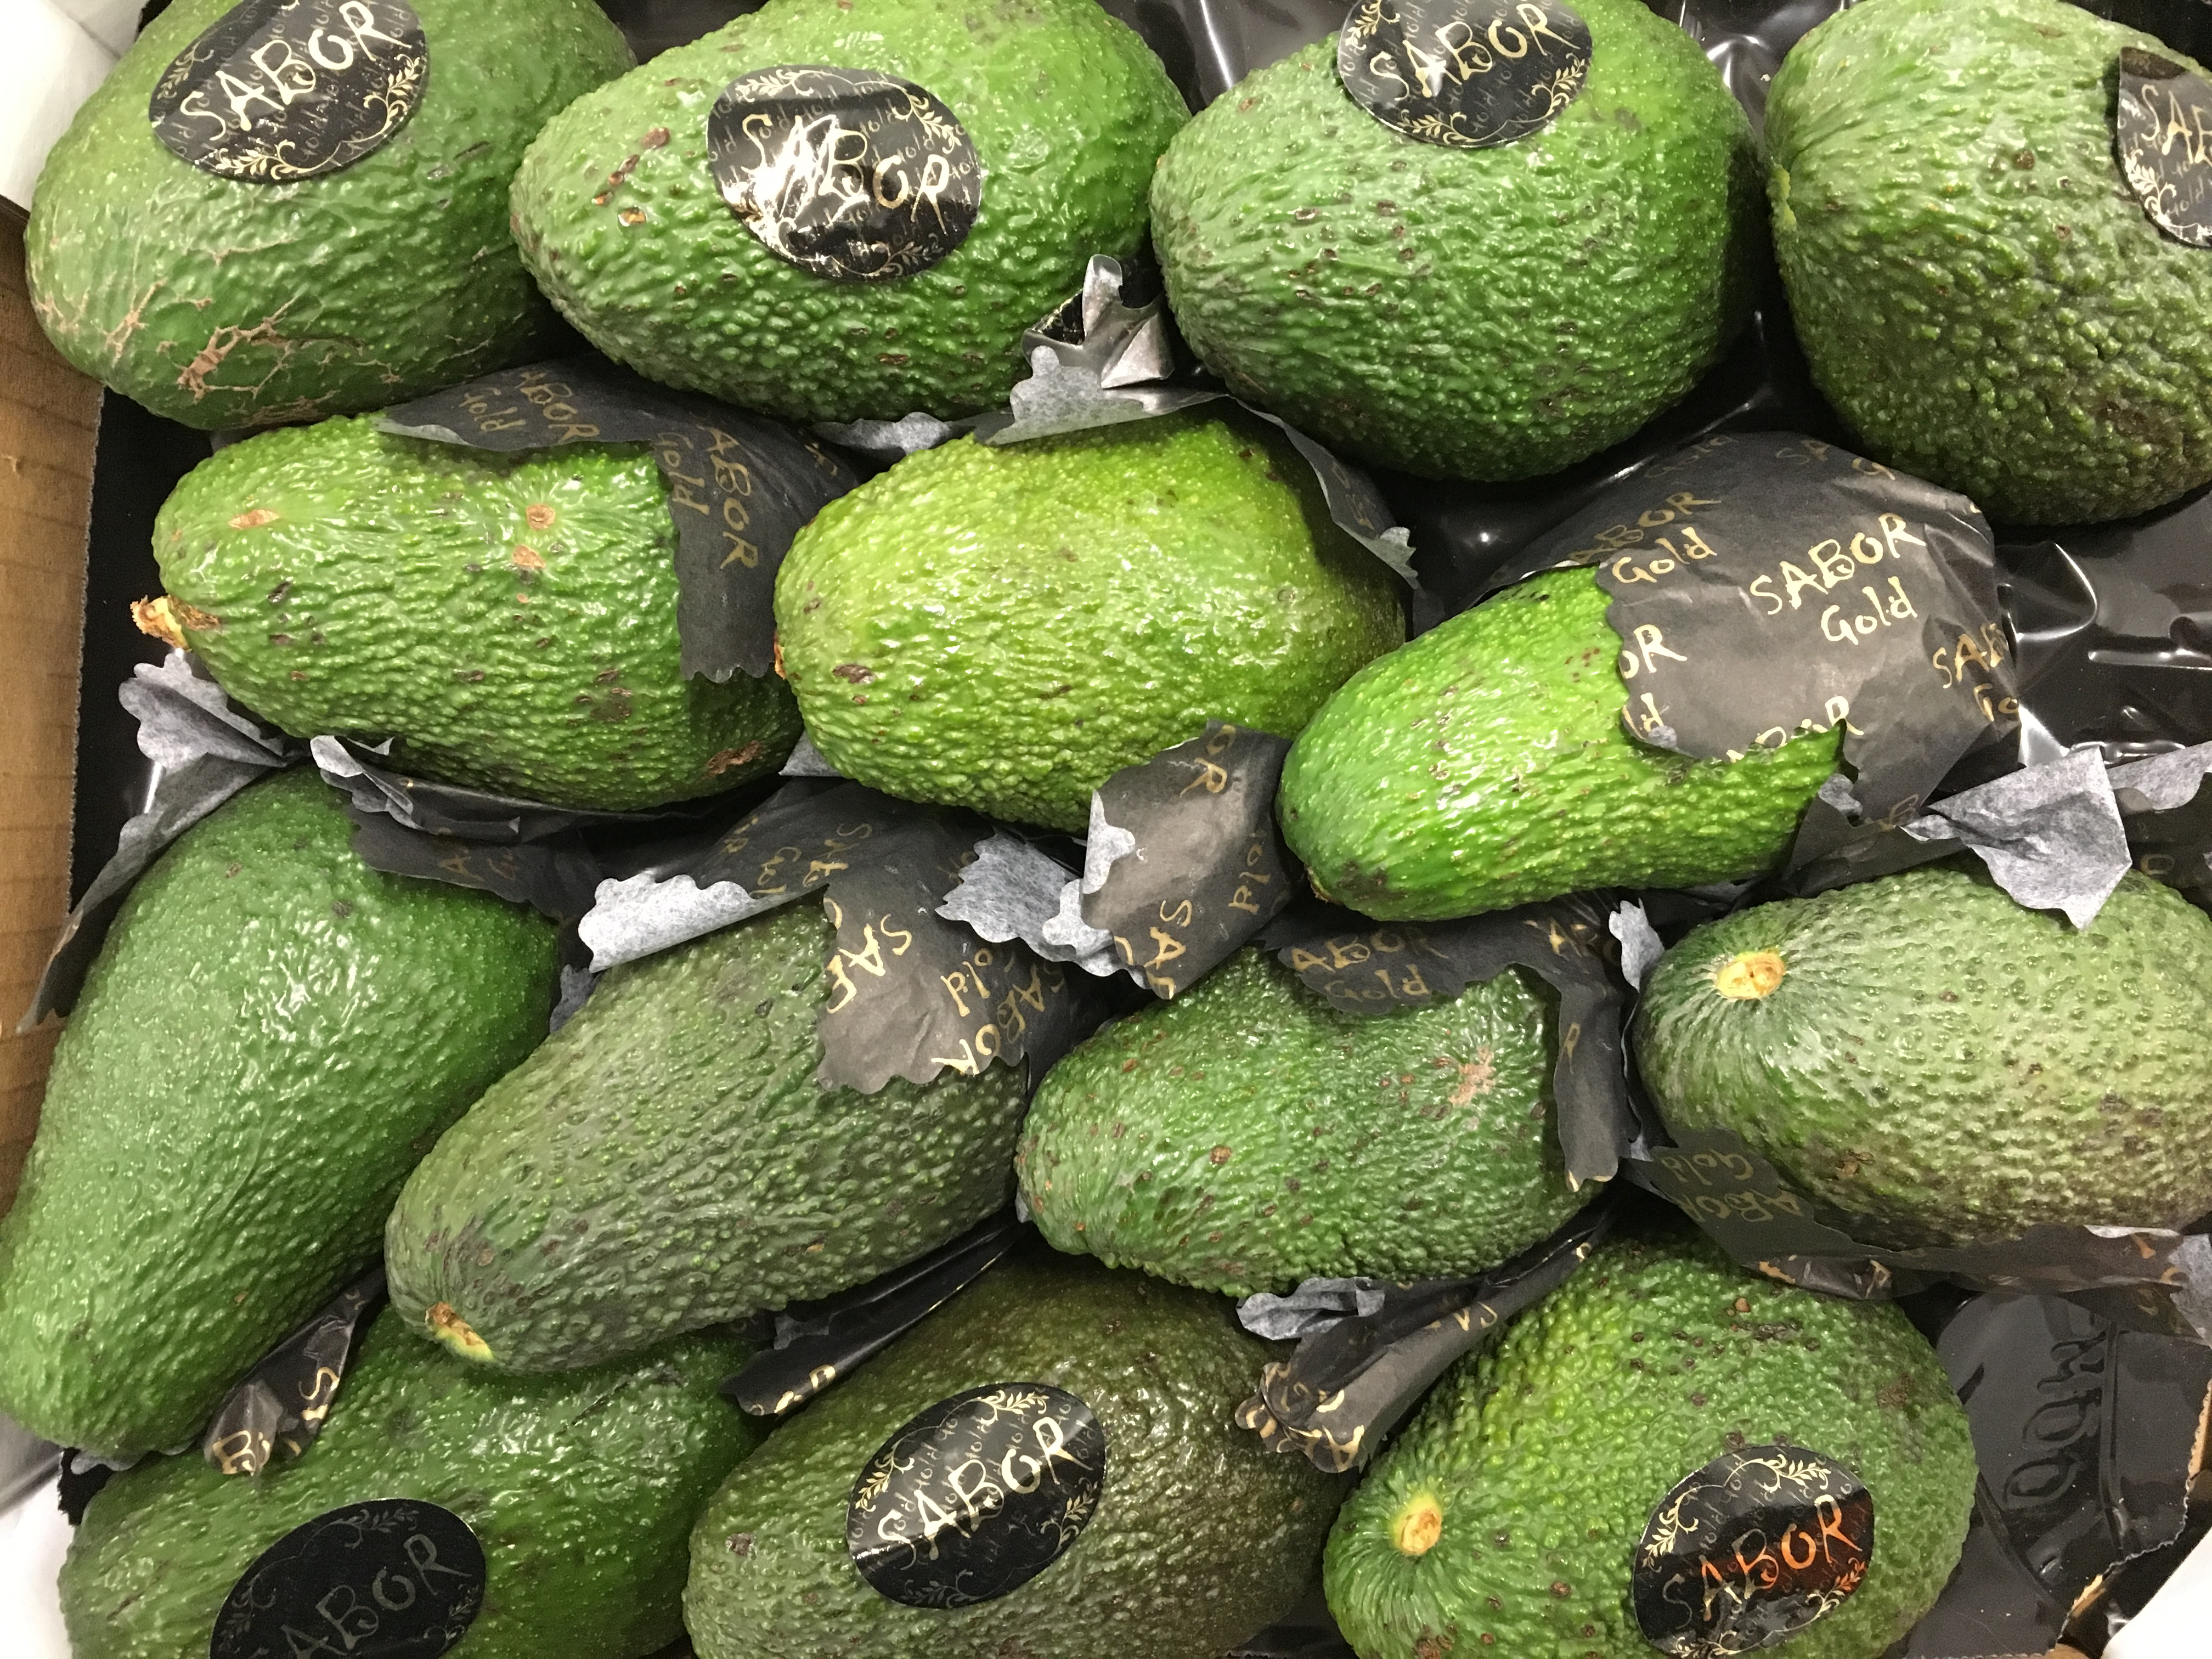 avocat sabor-atlantic-primeurs